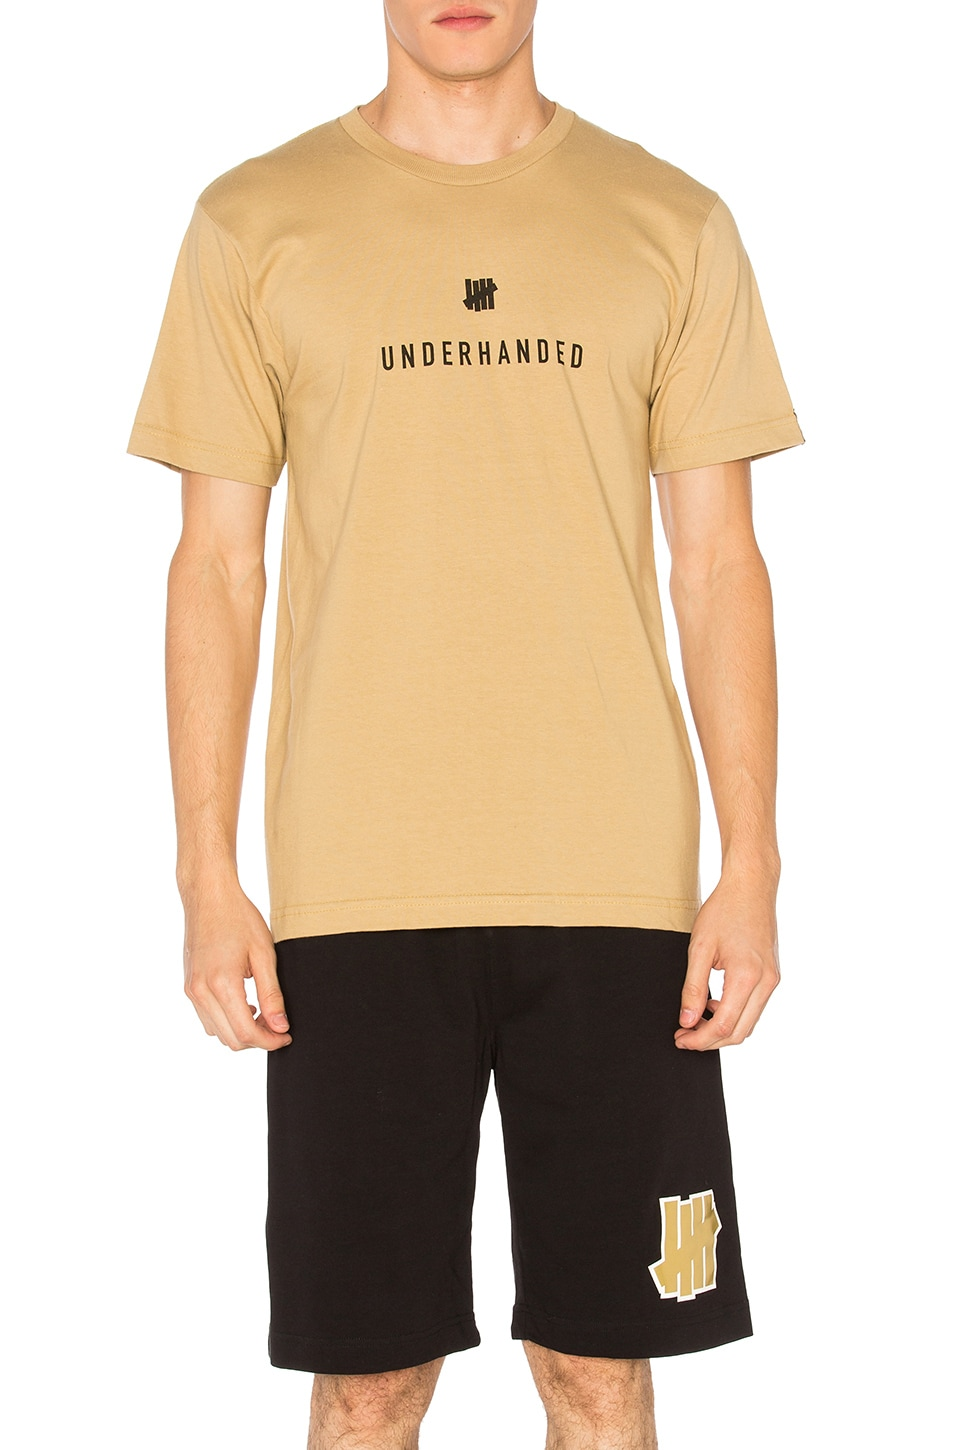 Underhanded Tee by Undefeated